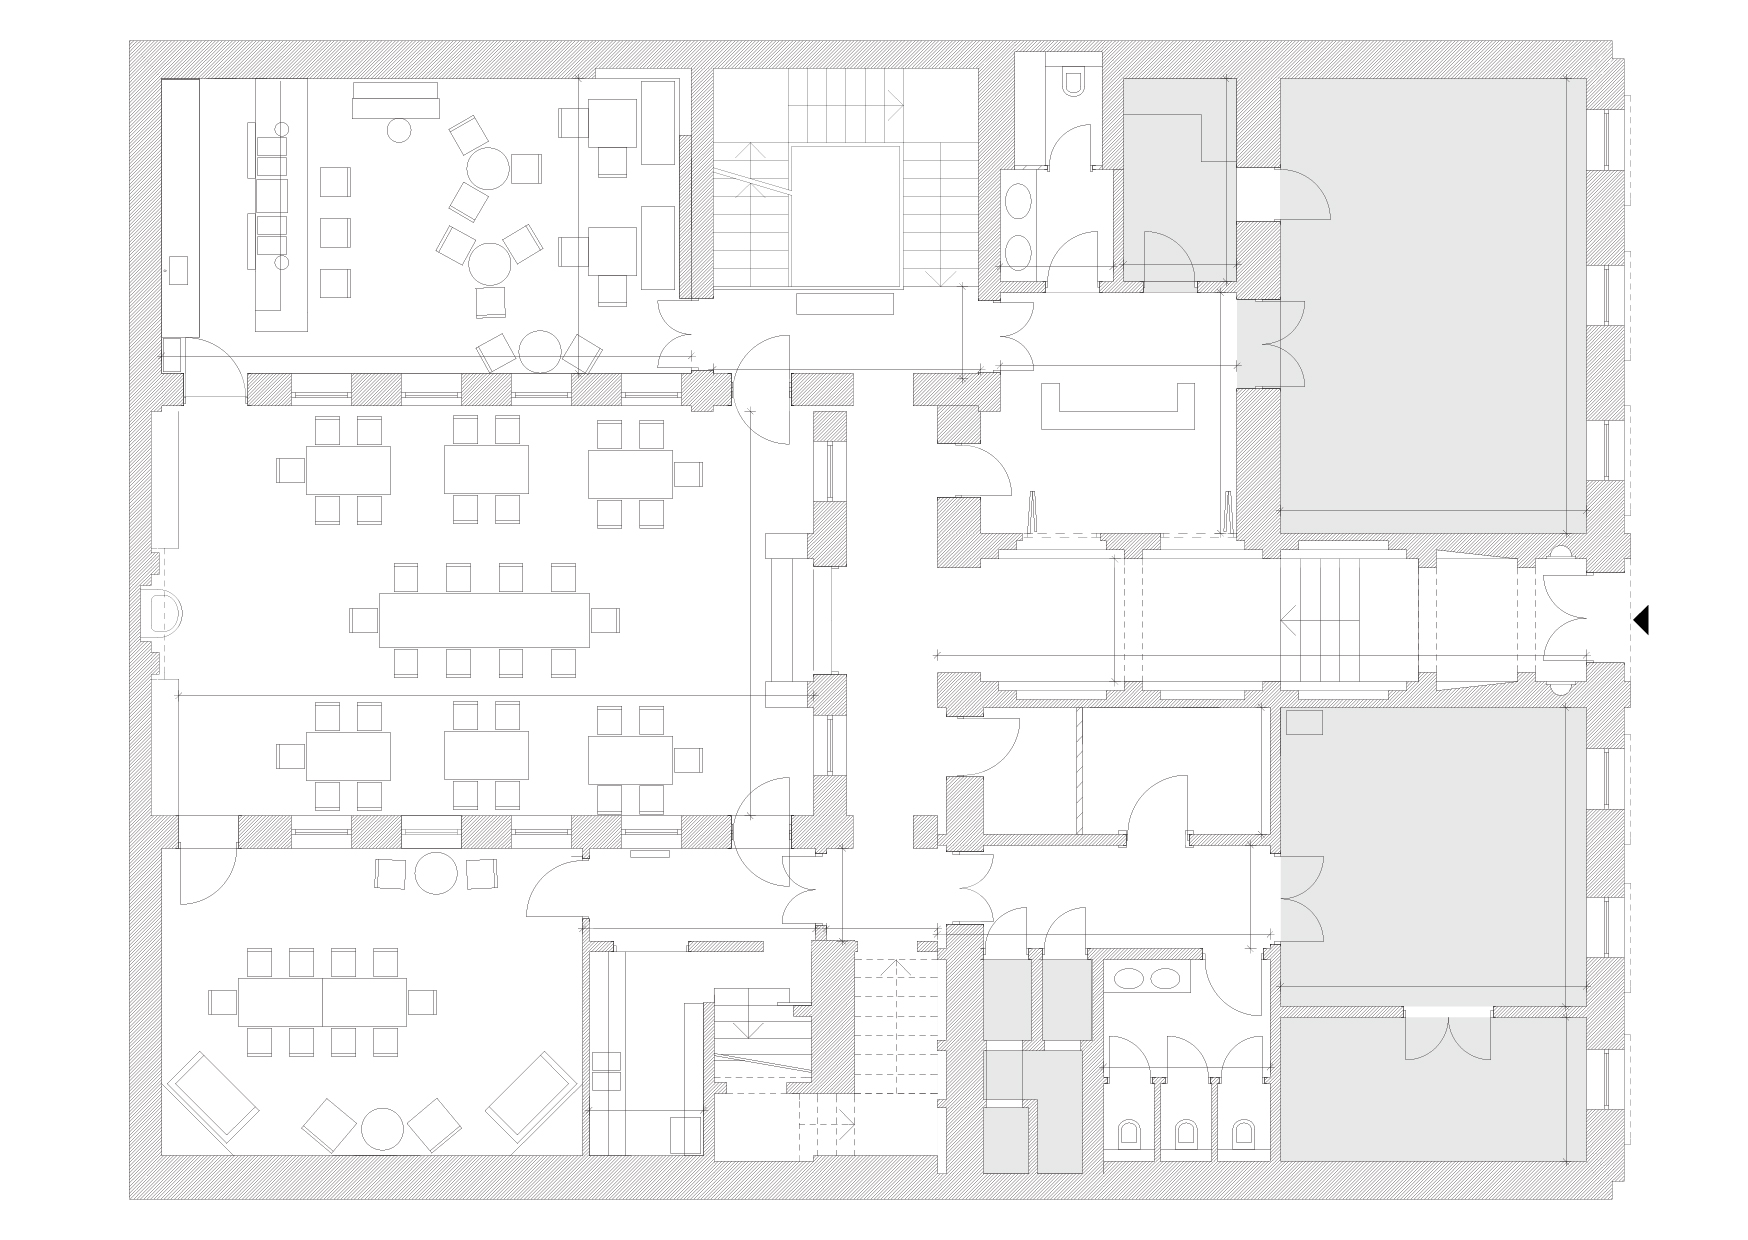 groundfloor-floorplan-02.jpg